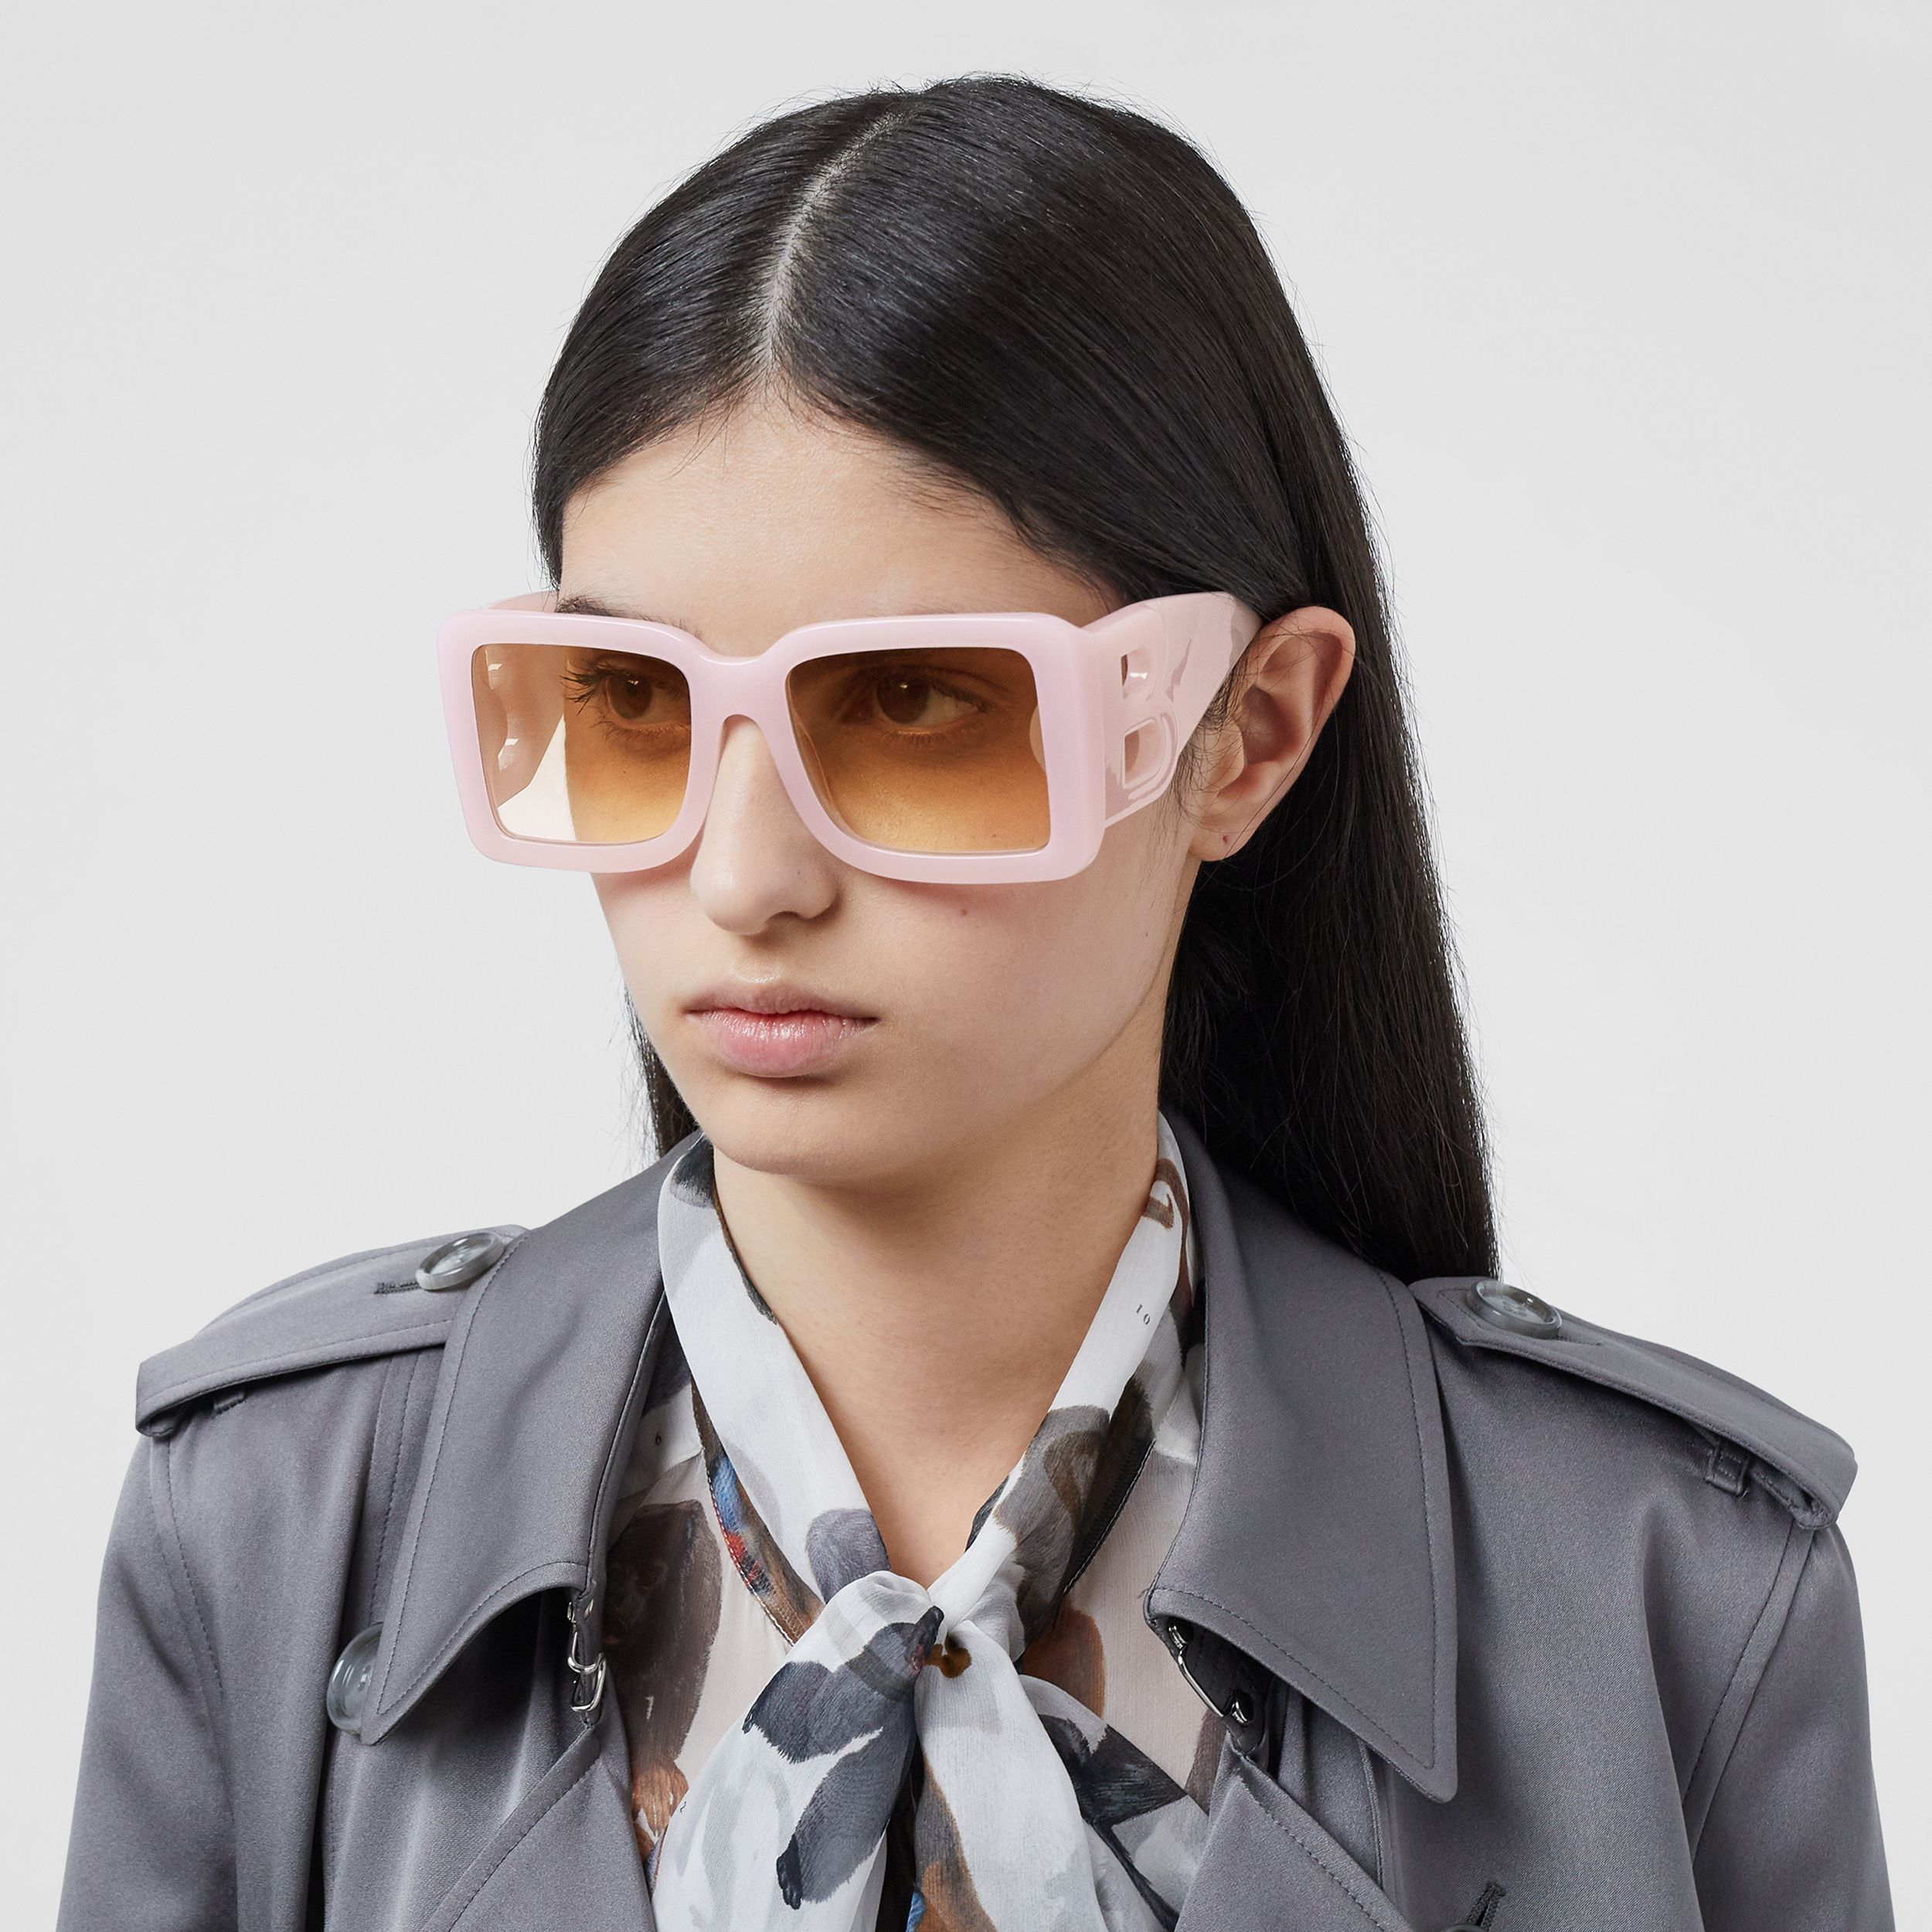 B Motif Square Frame Sunglasses in Lilac - Women | Burberry - 3